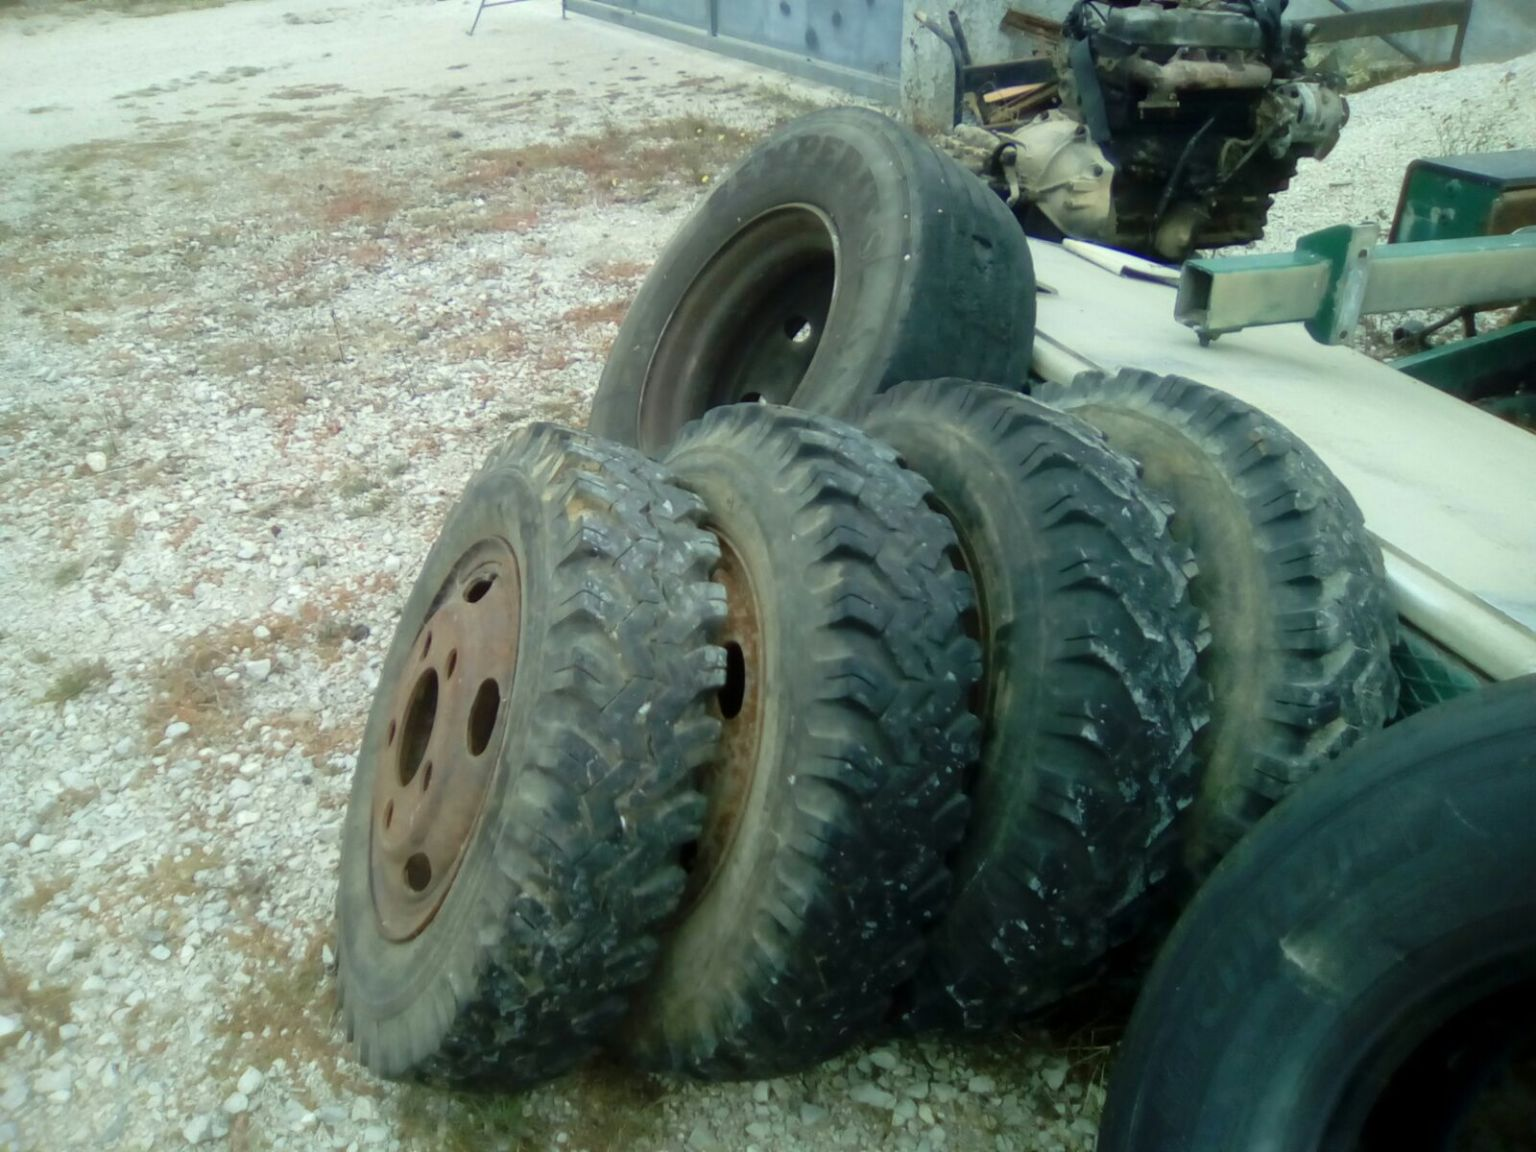 Used 650R16C tyres on rims for Toyota Dyna BU30 / 300 truck.